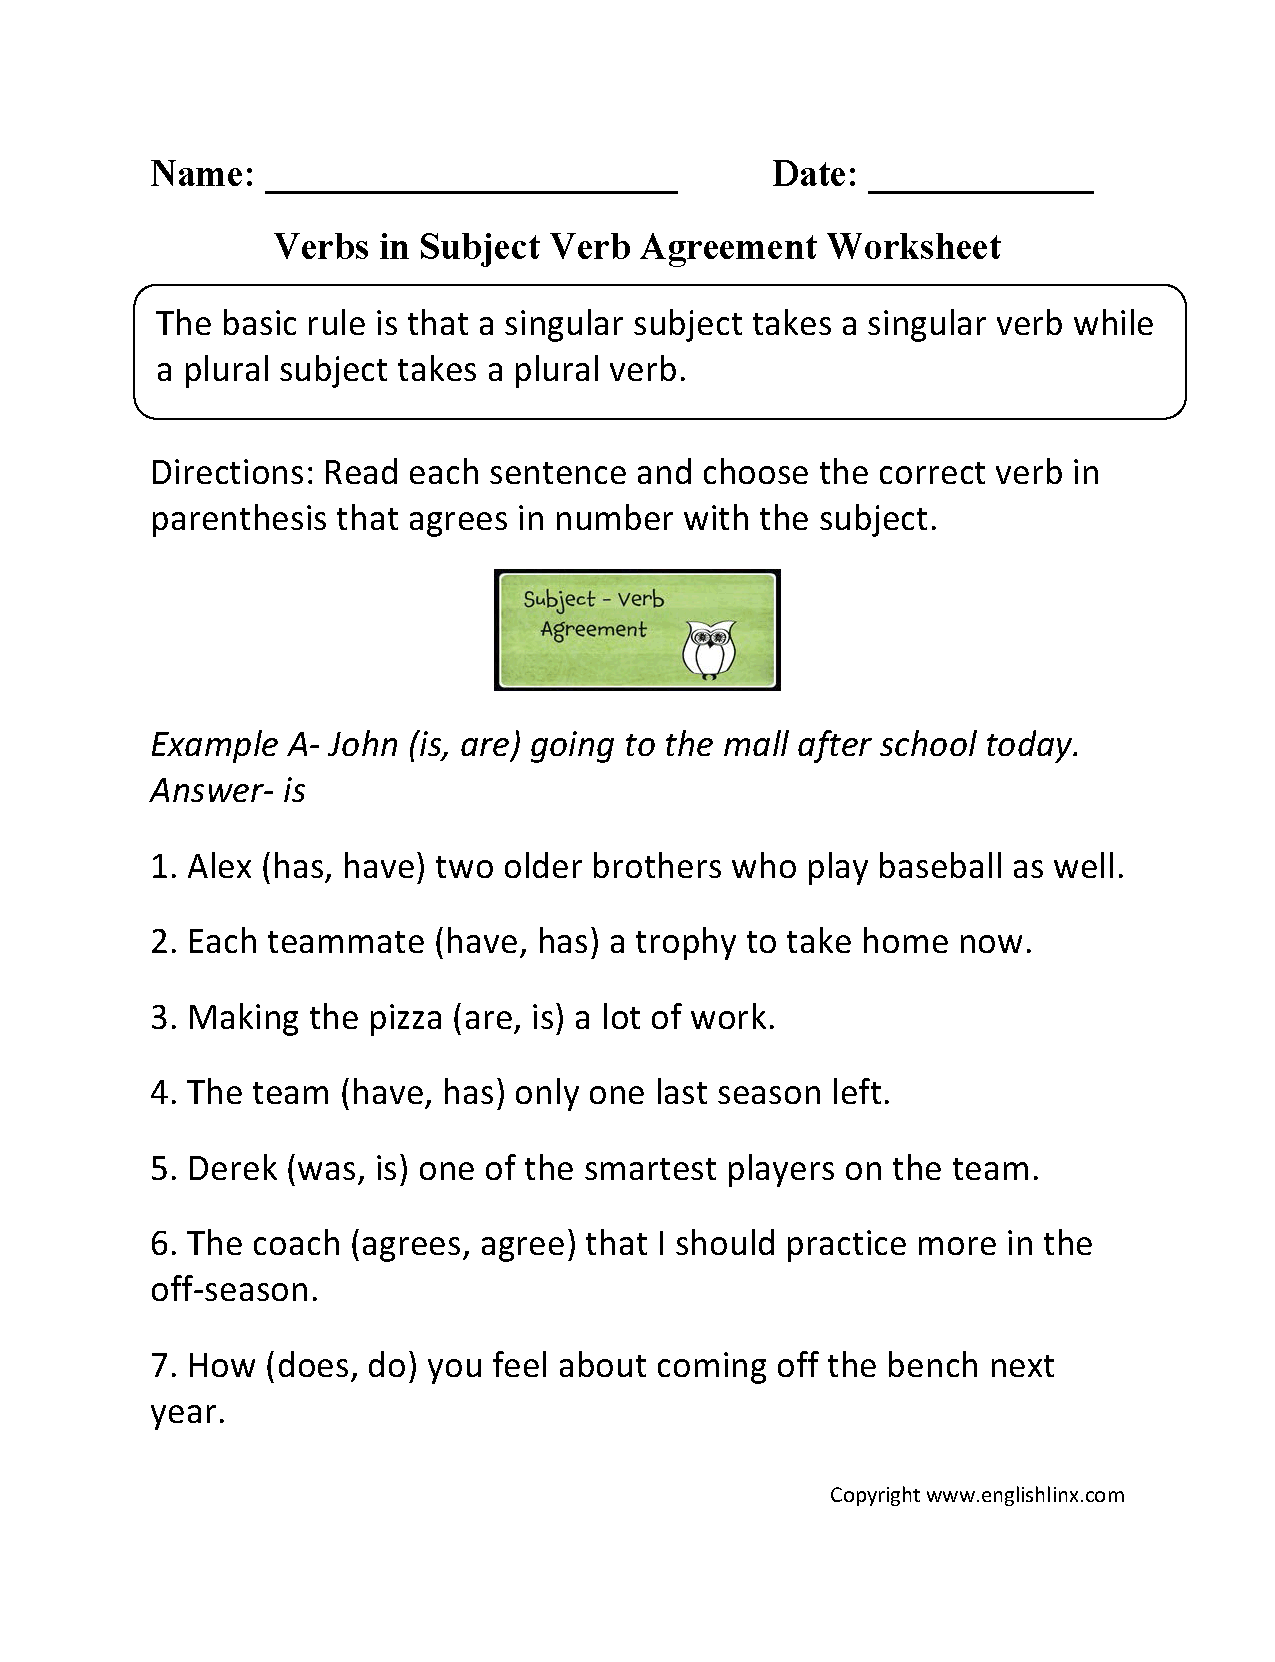 Word Usage Worksheets – Subject Verb Agreement Worksheet with Answers